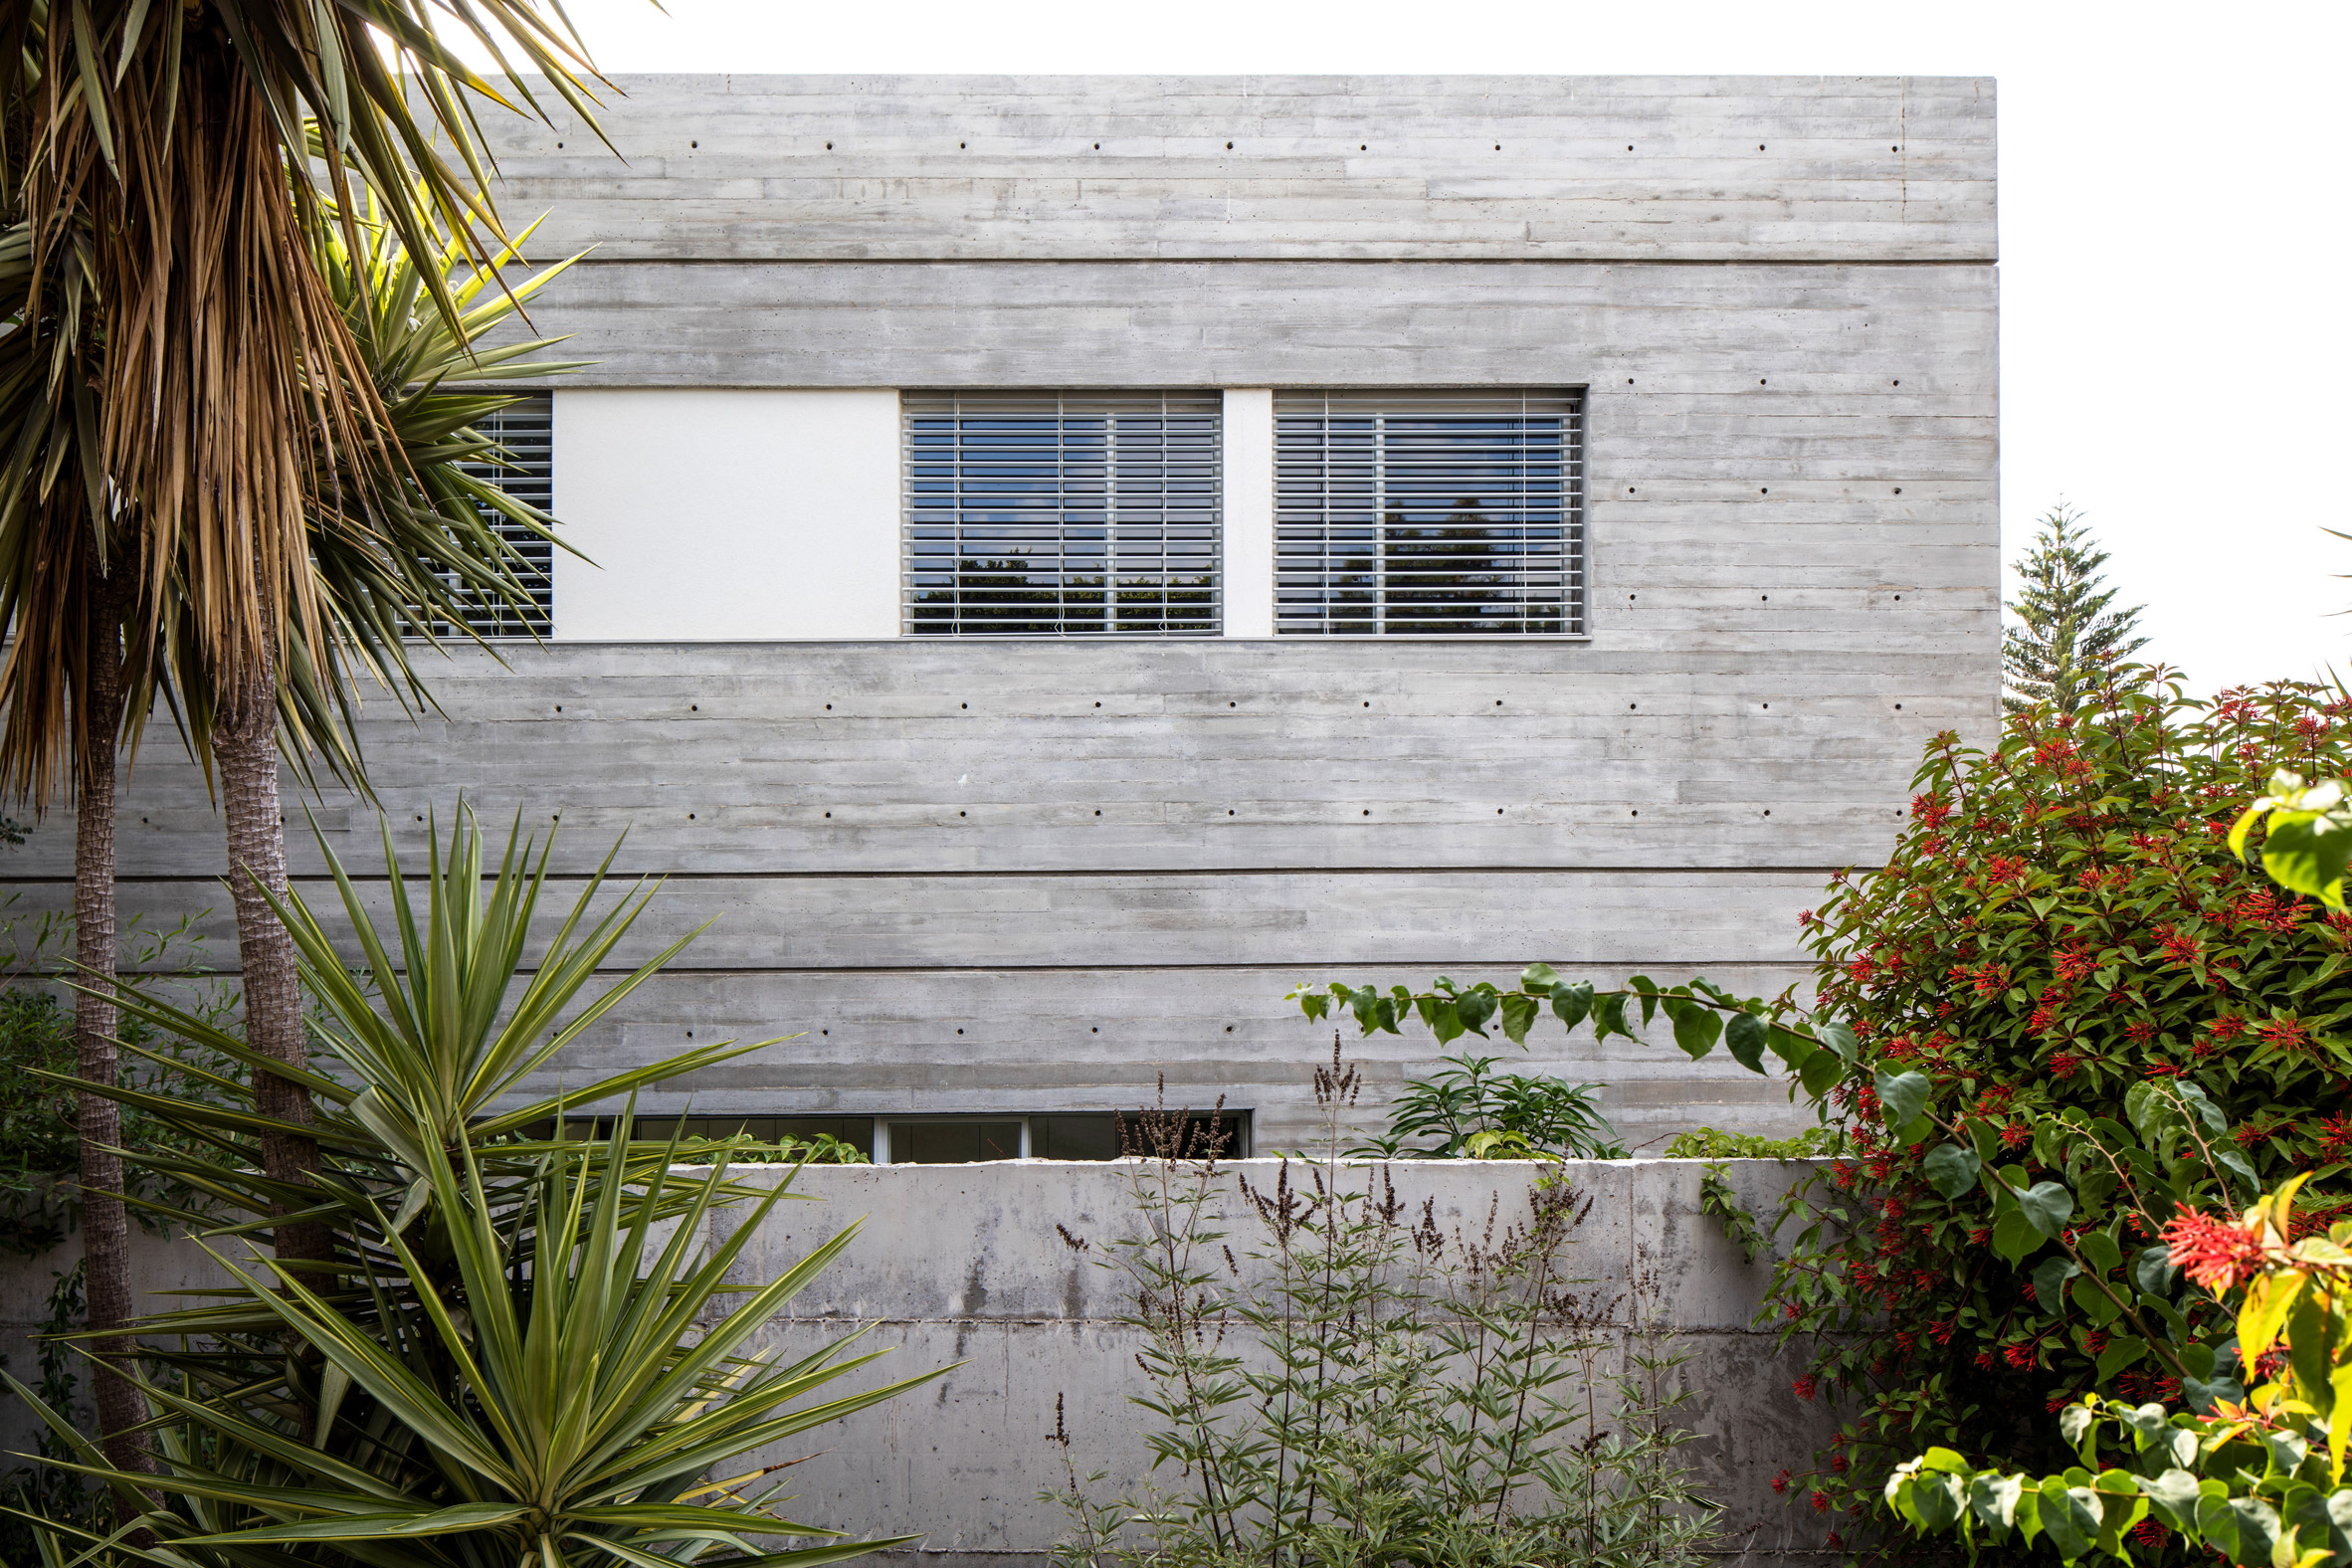 3322 Studio builds concrete home in Tel Aviv around enclosed patios